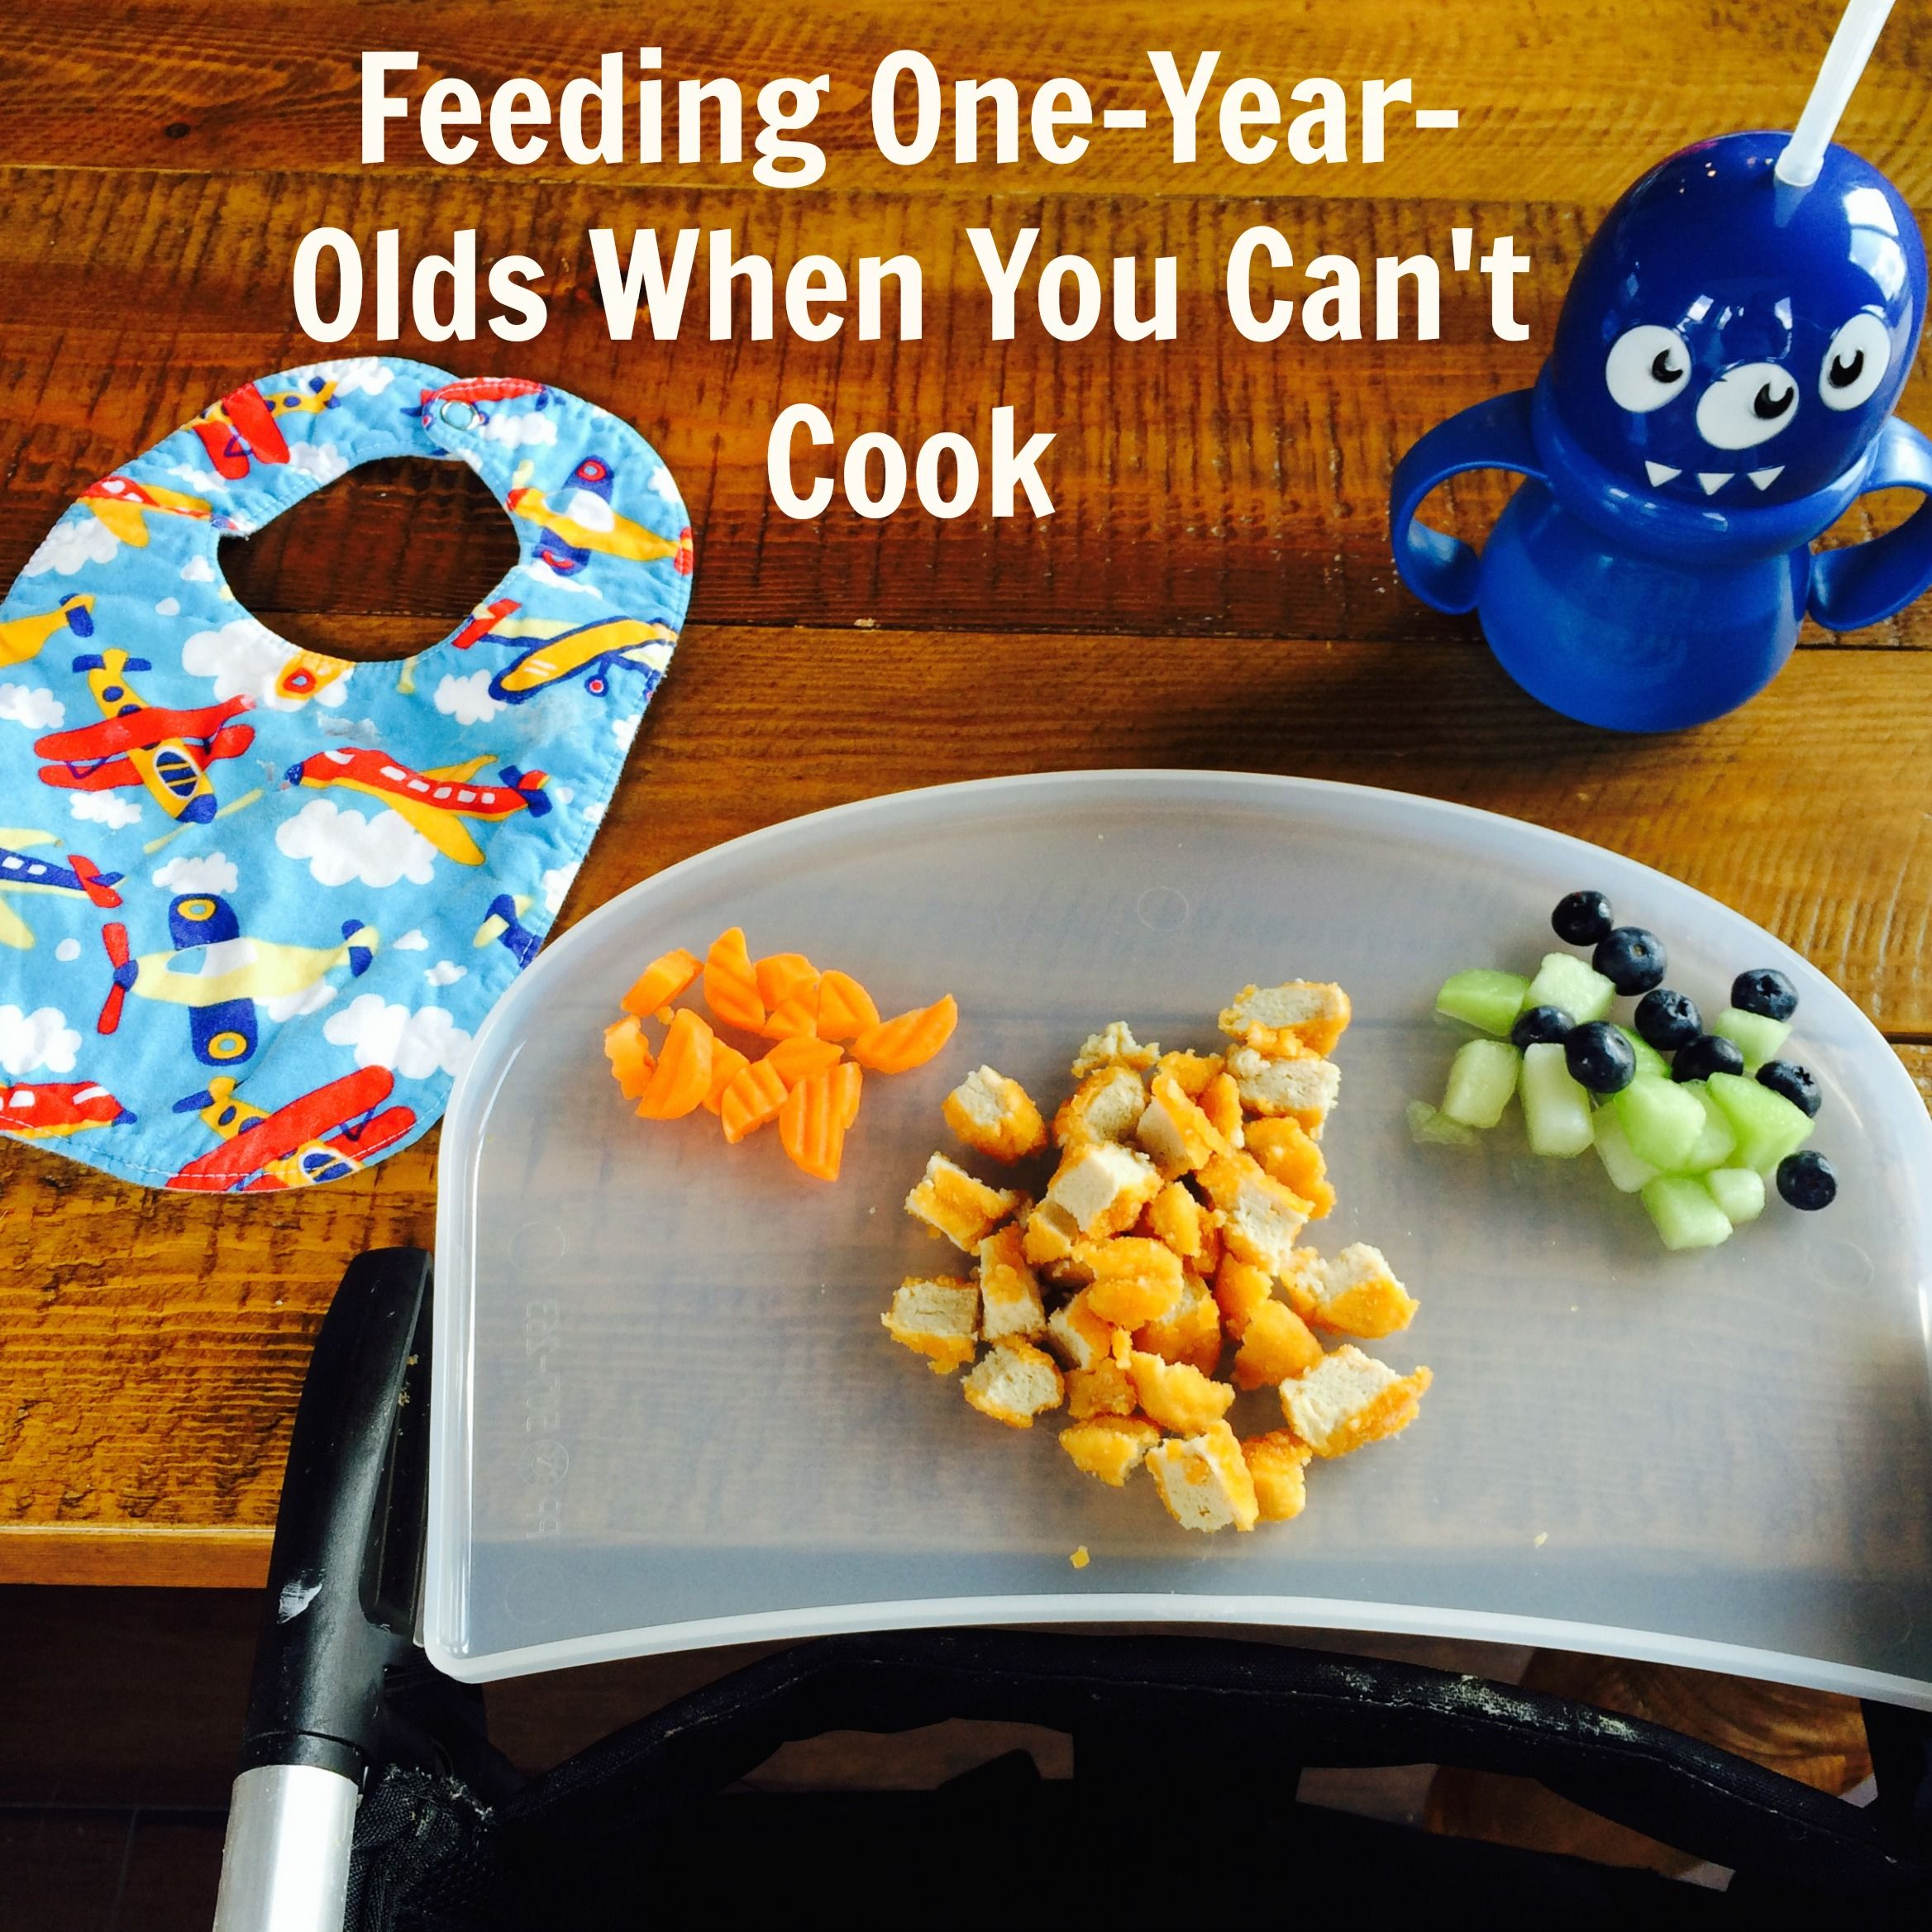 Feeding One-Year-Olds When You Can't Cook